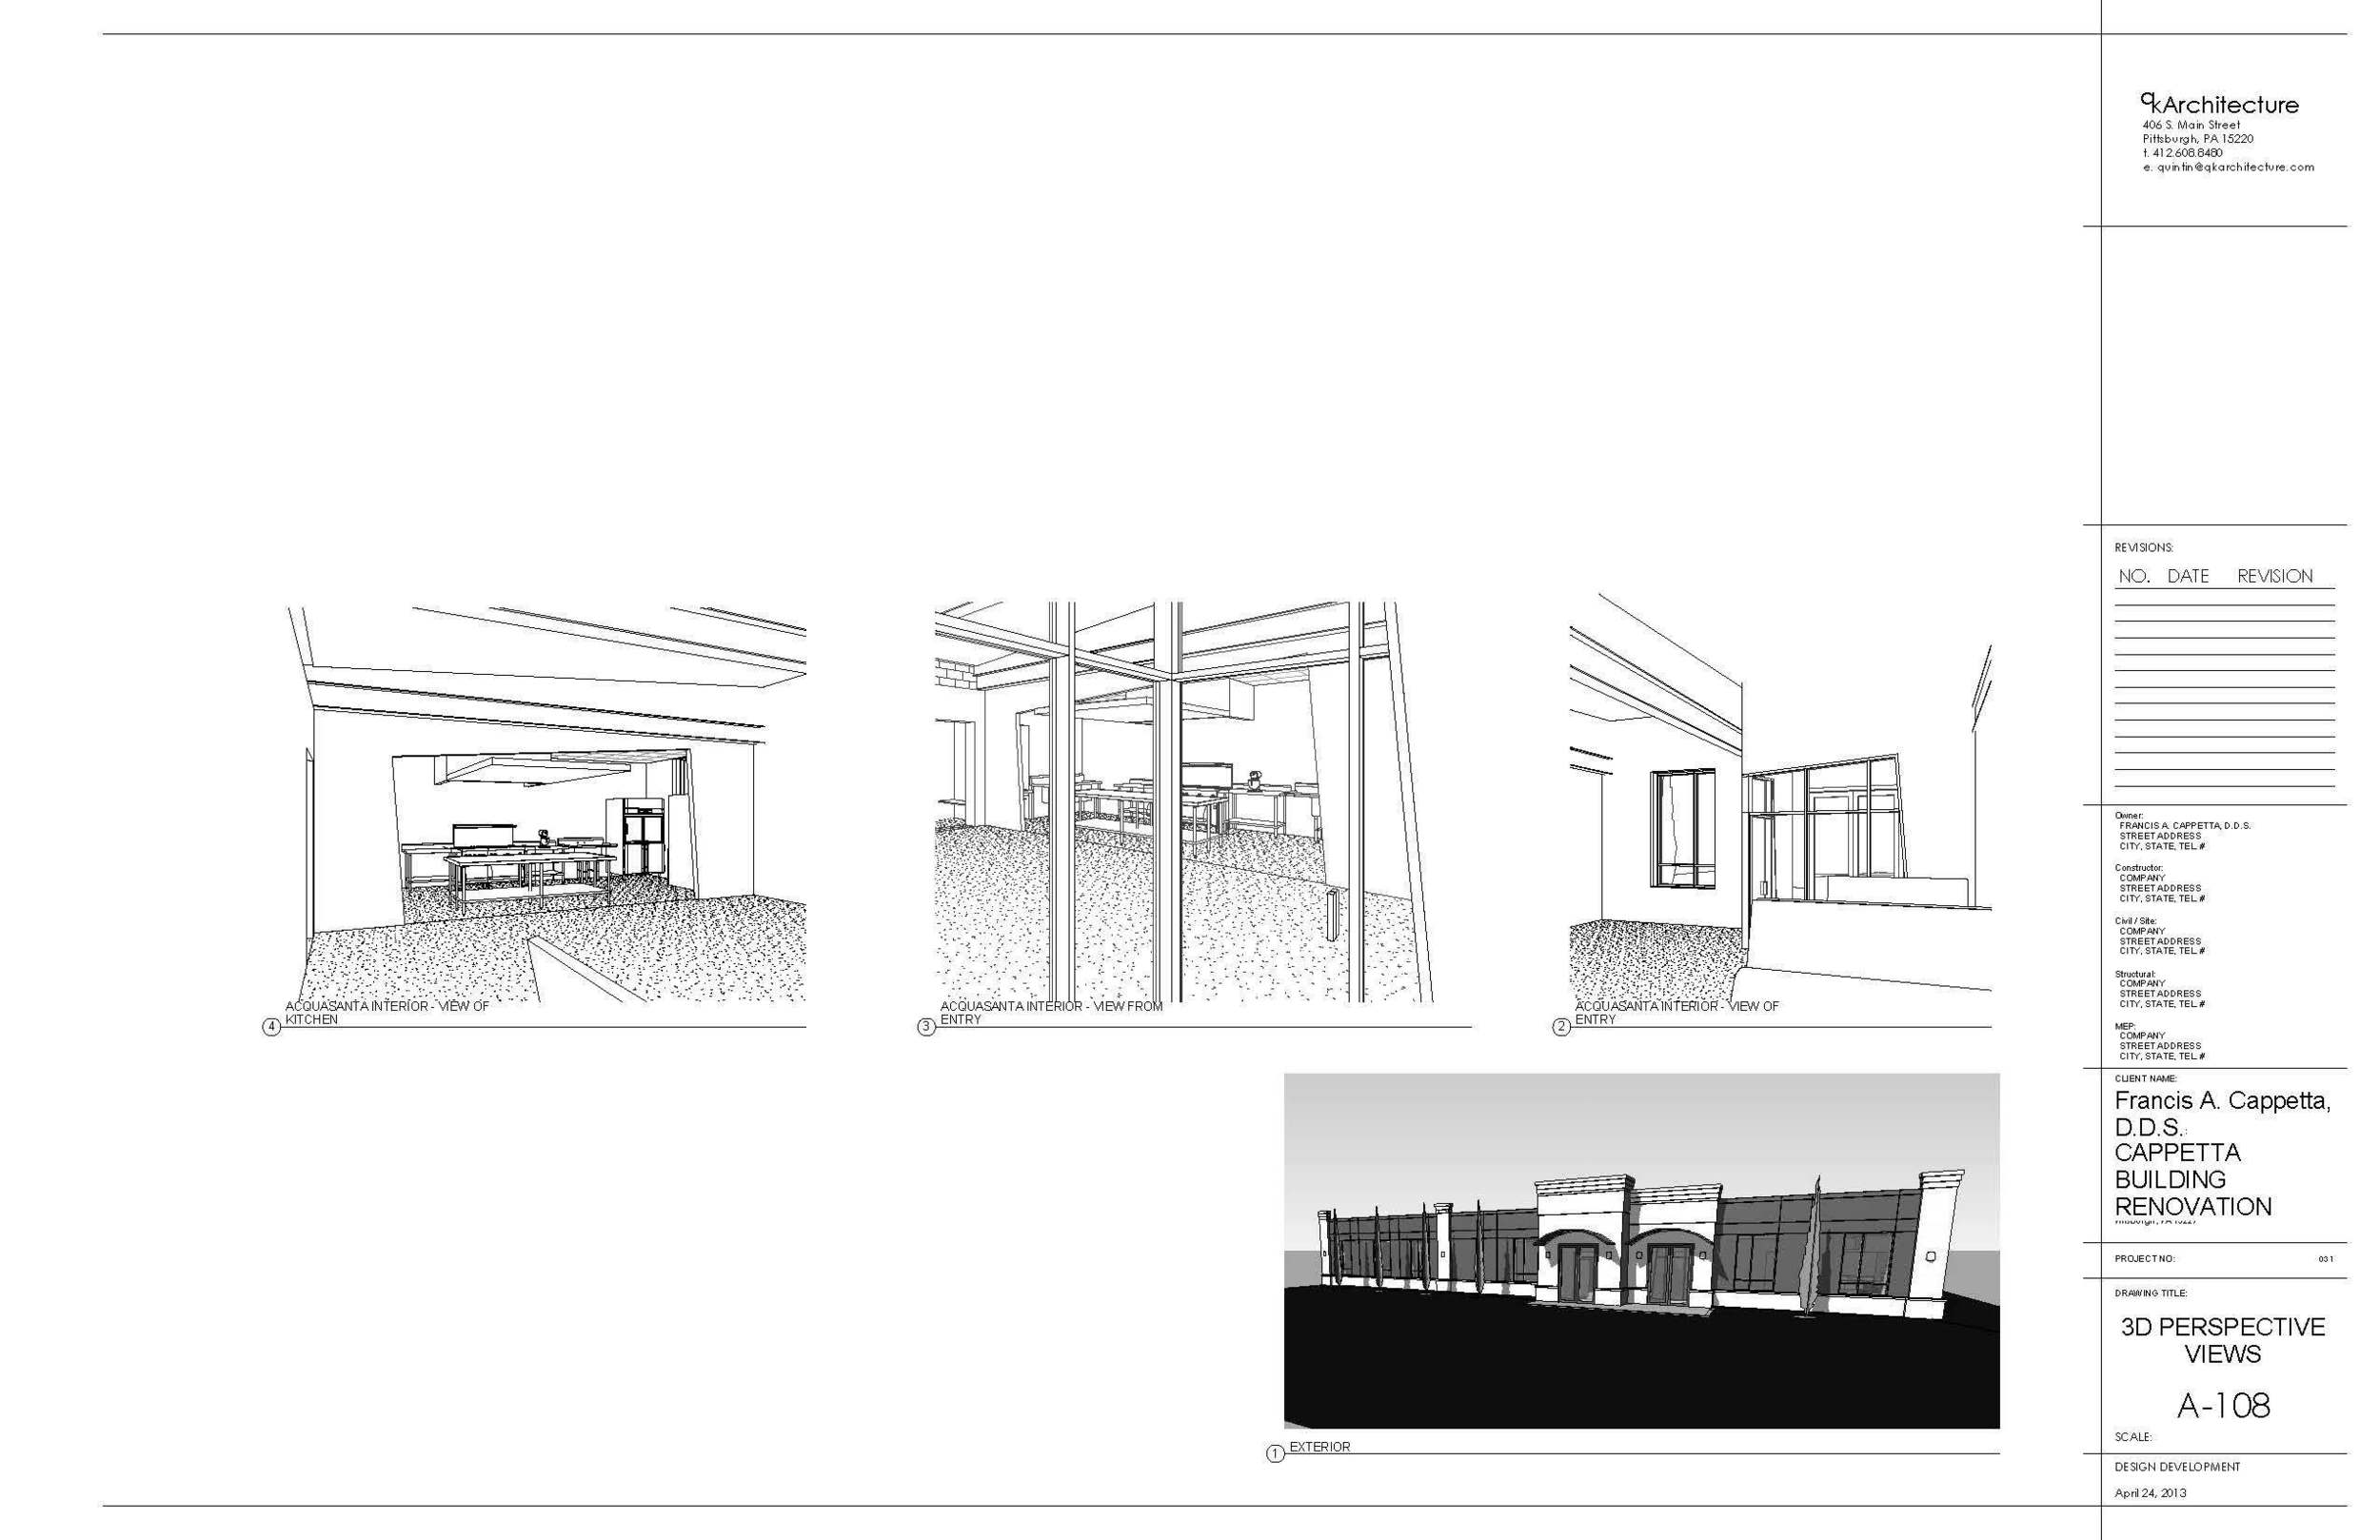 PROCESS: Proposed renovations